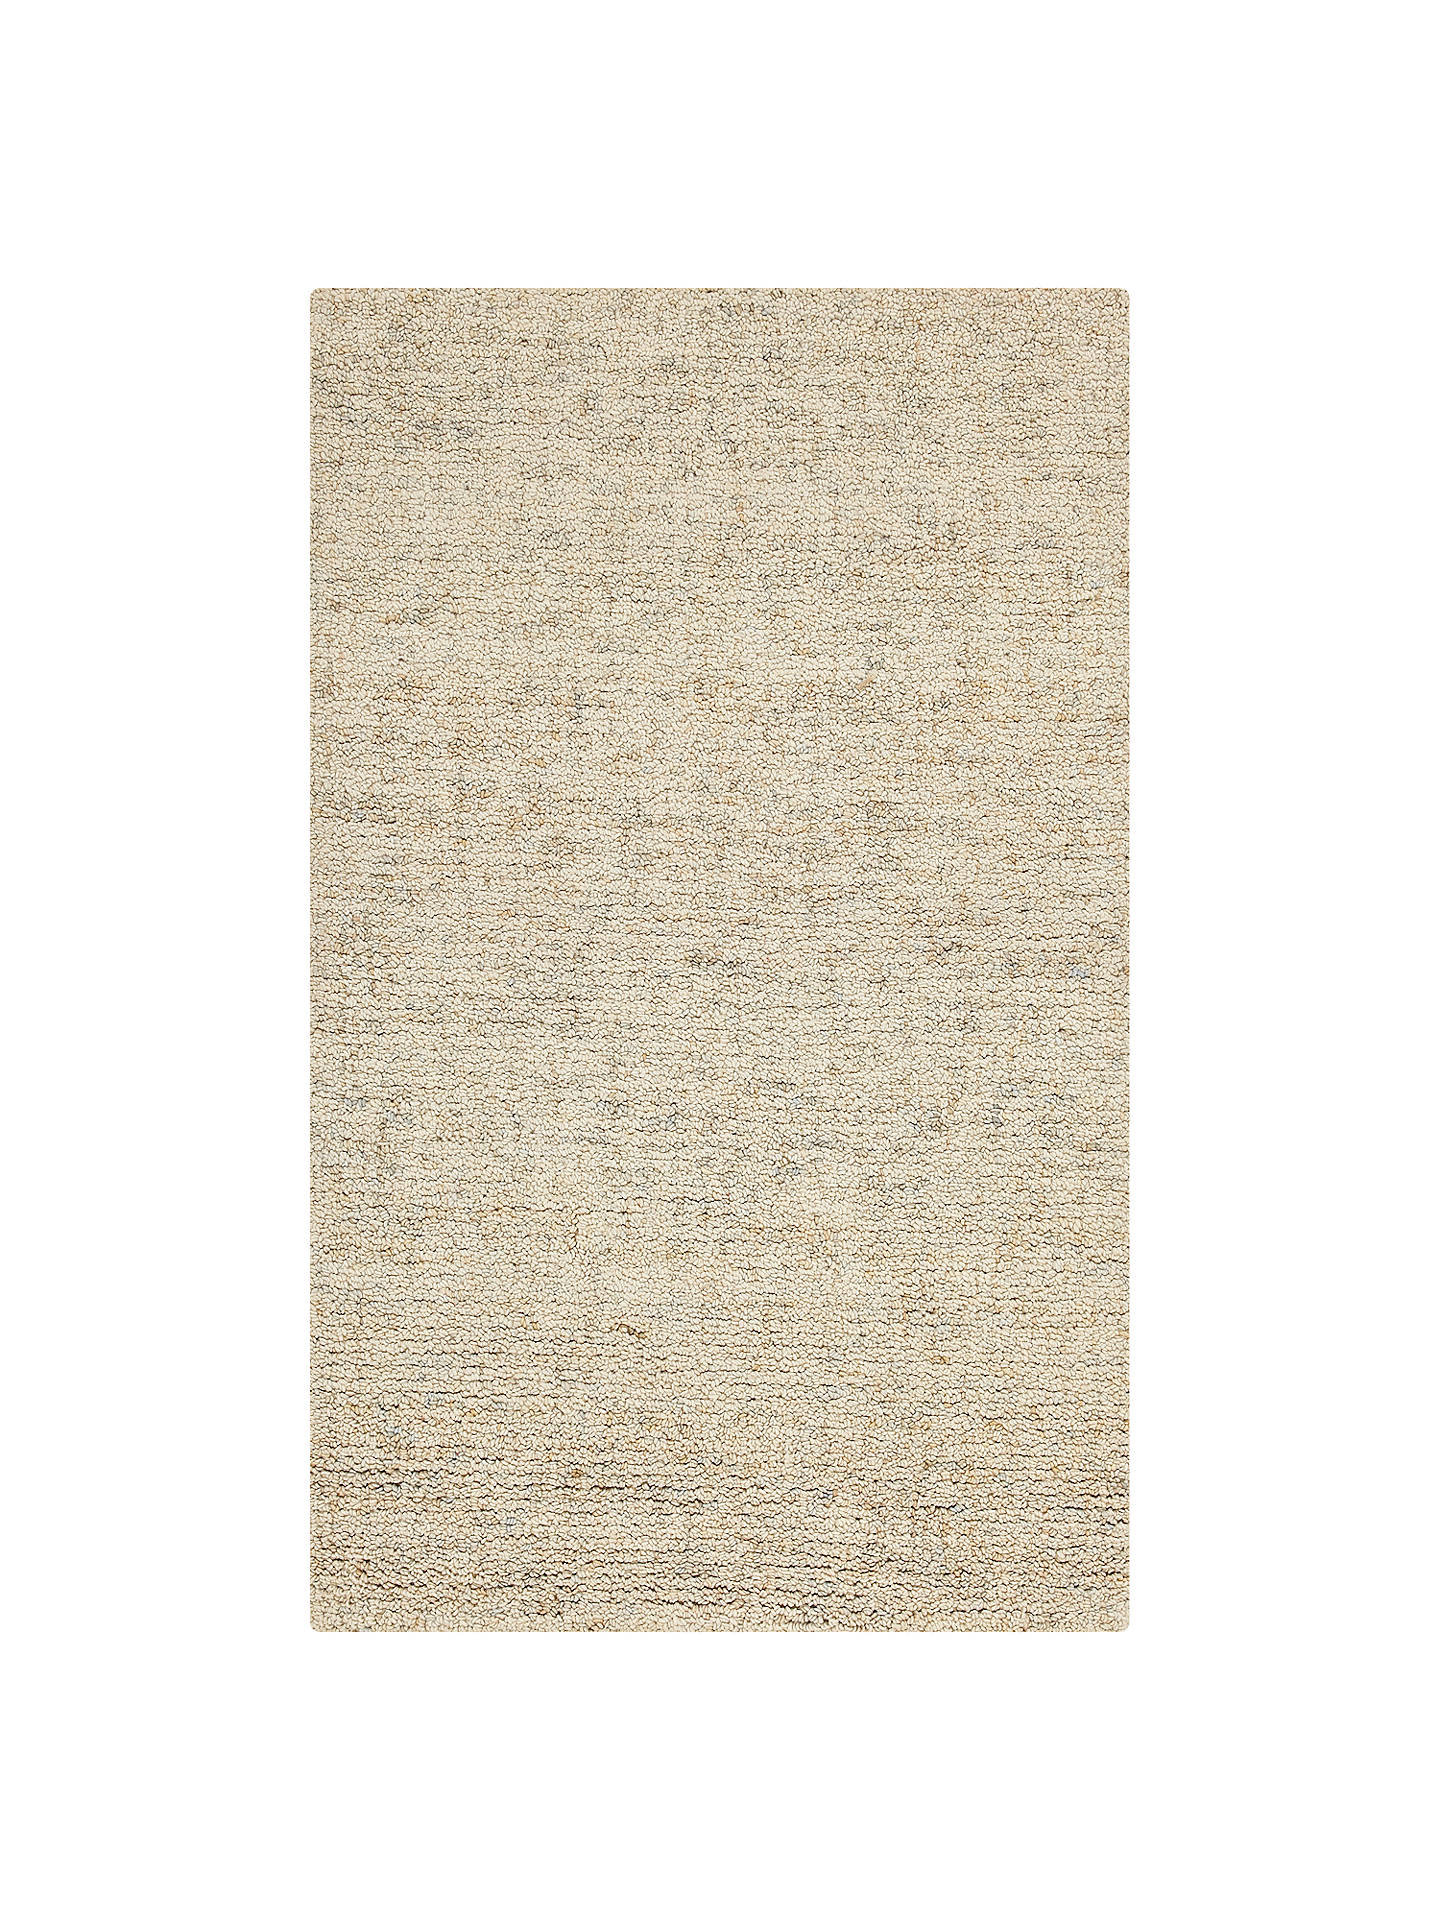 BuyJohn Lewis & Partners Orkney Rug, Ivory, L180 x W120cm Online at johnlewis.com